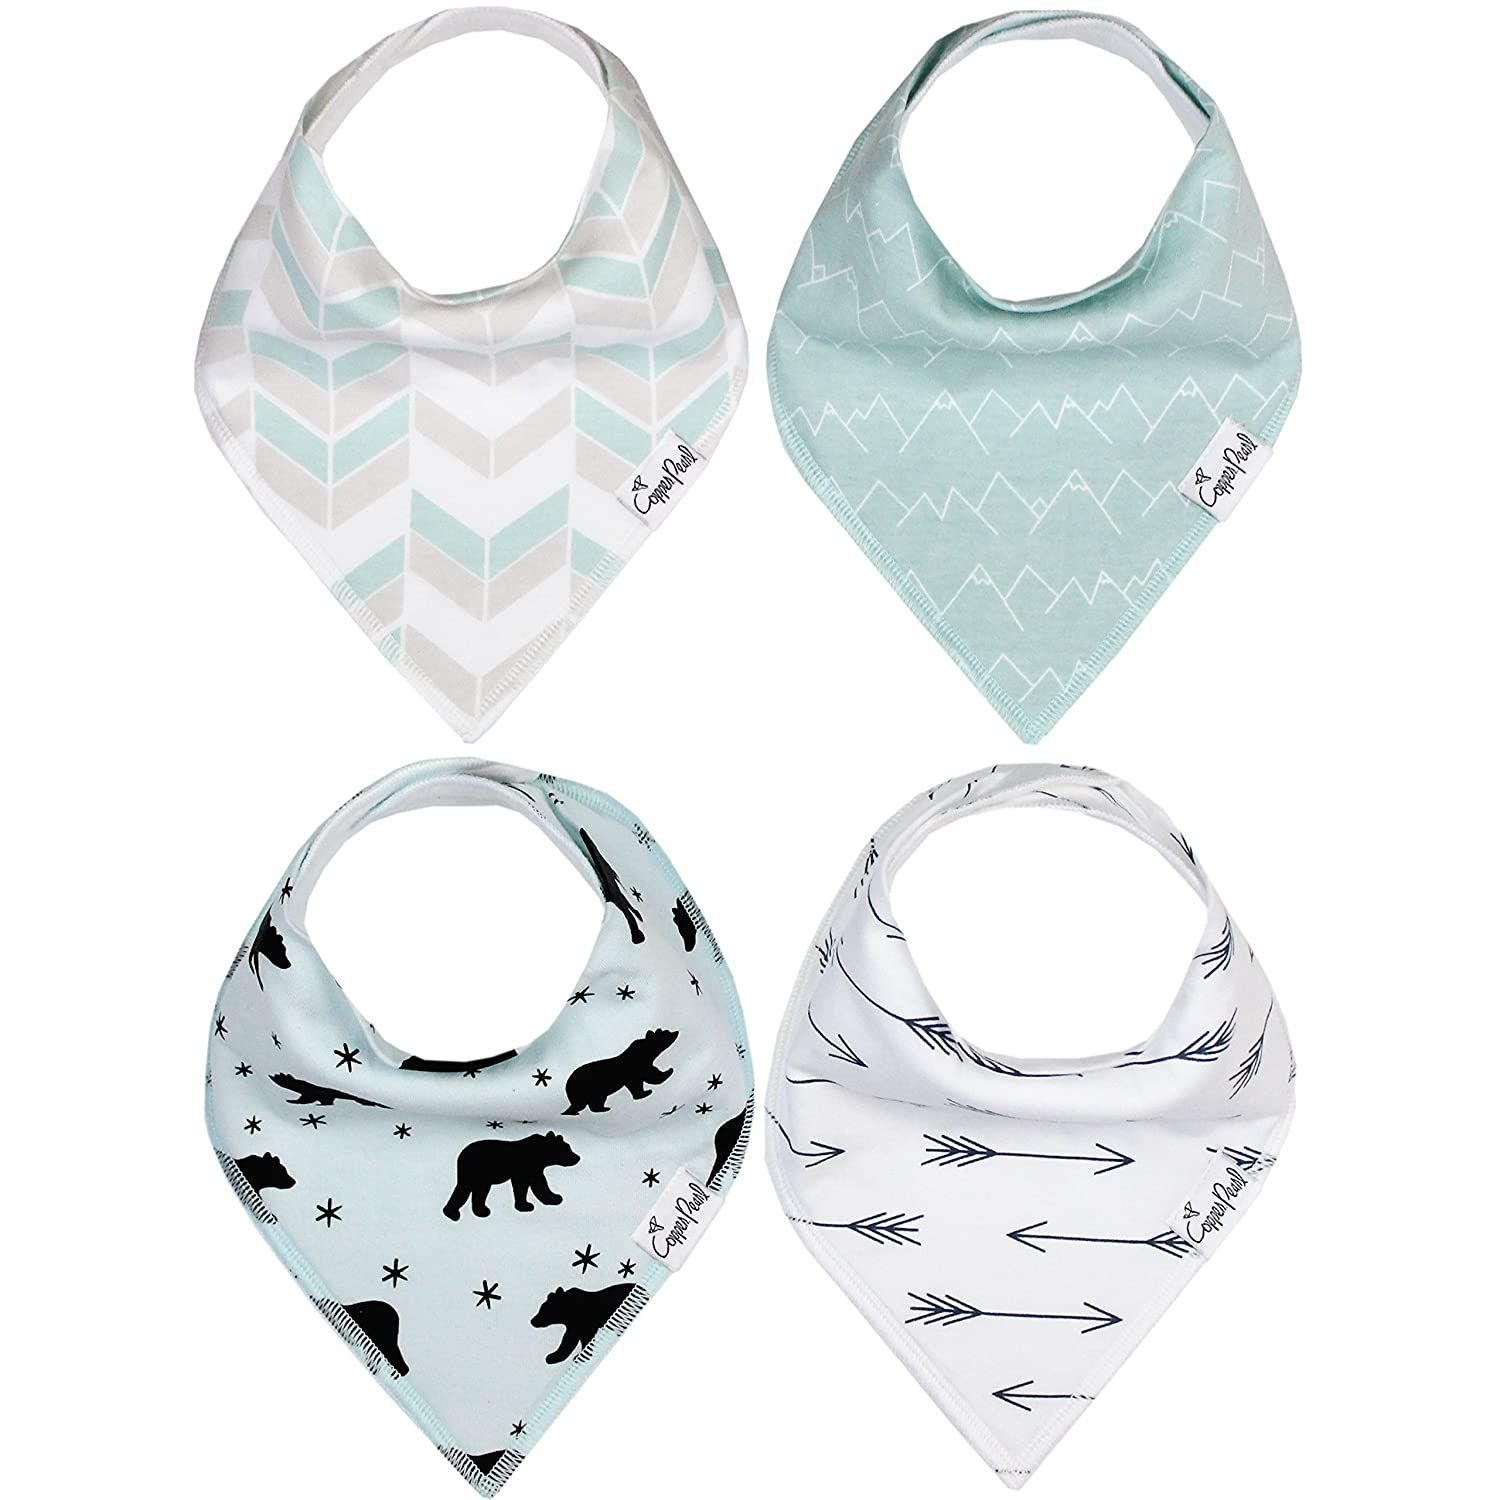 "Baby Bandana Drool Bibs 4 Pack Gift Set For Boys ""Archer Set"" by Copper Pearl X00144SZQ3"